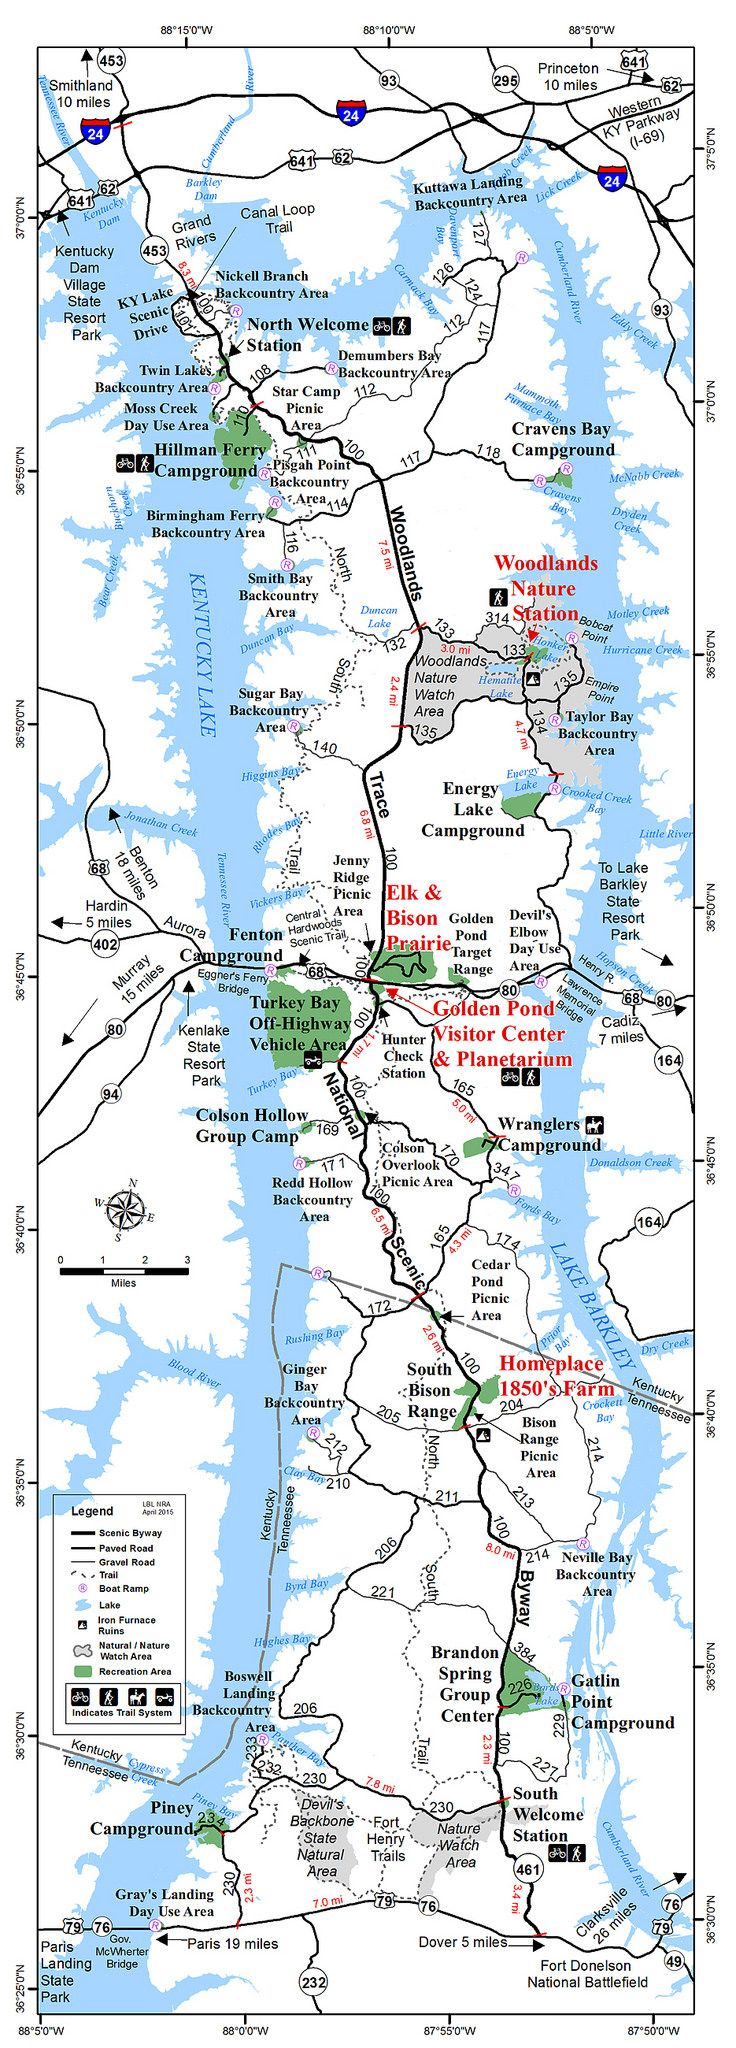 LBLGenMap Lakes Kentucky And Camping Places - Kentucky lakes map